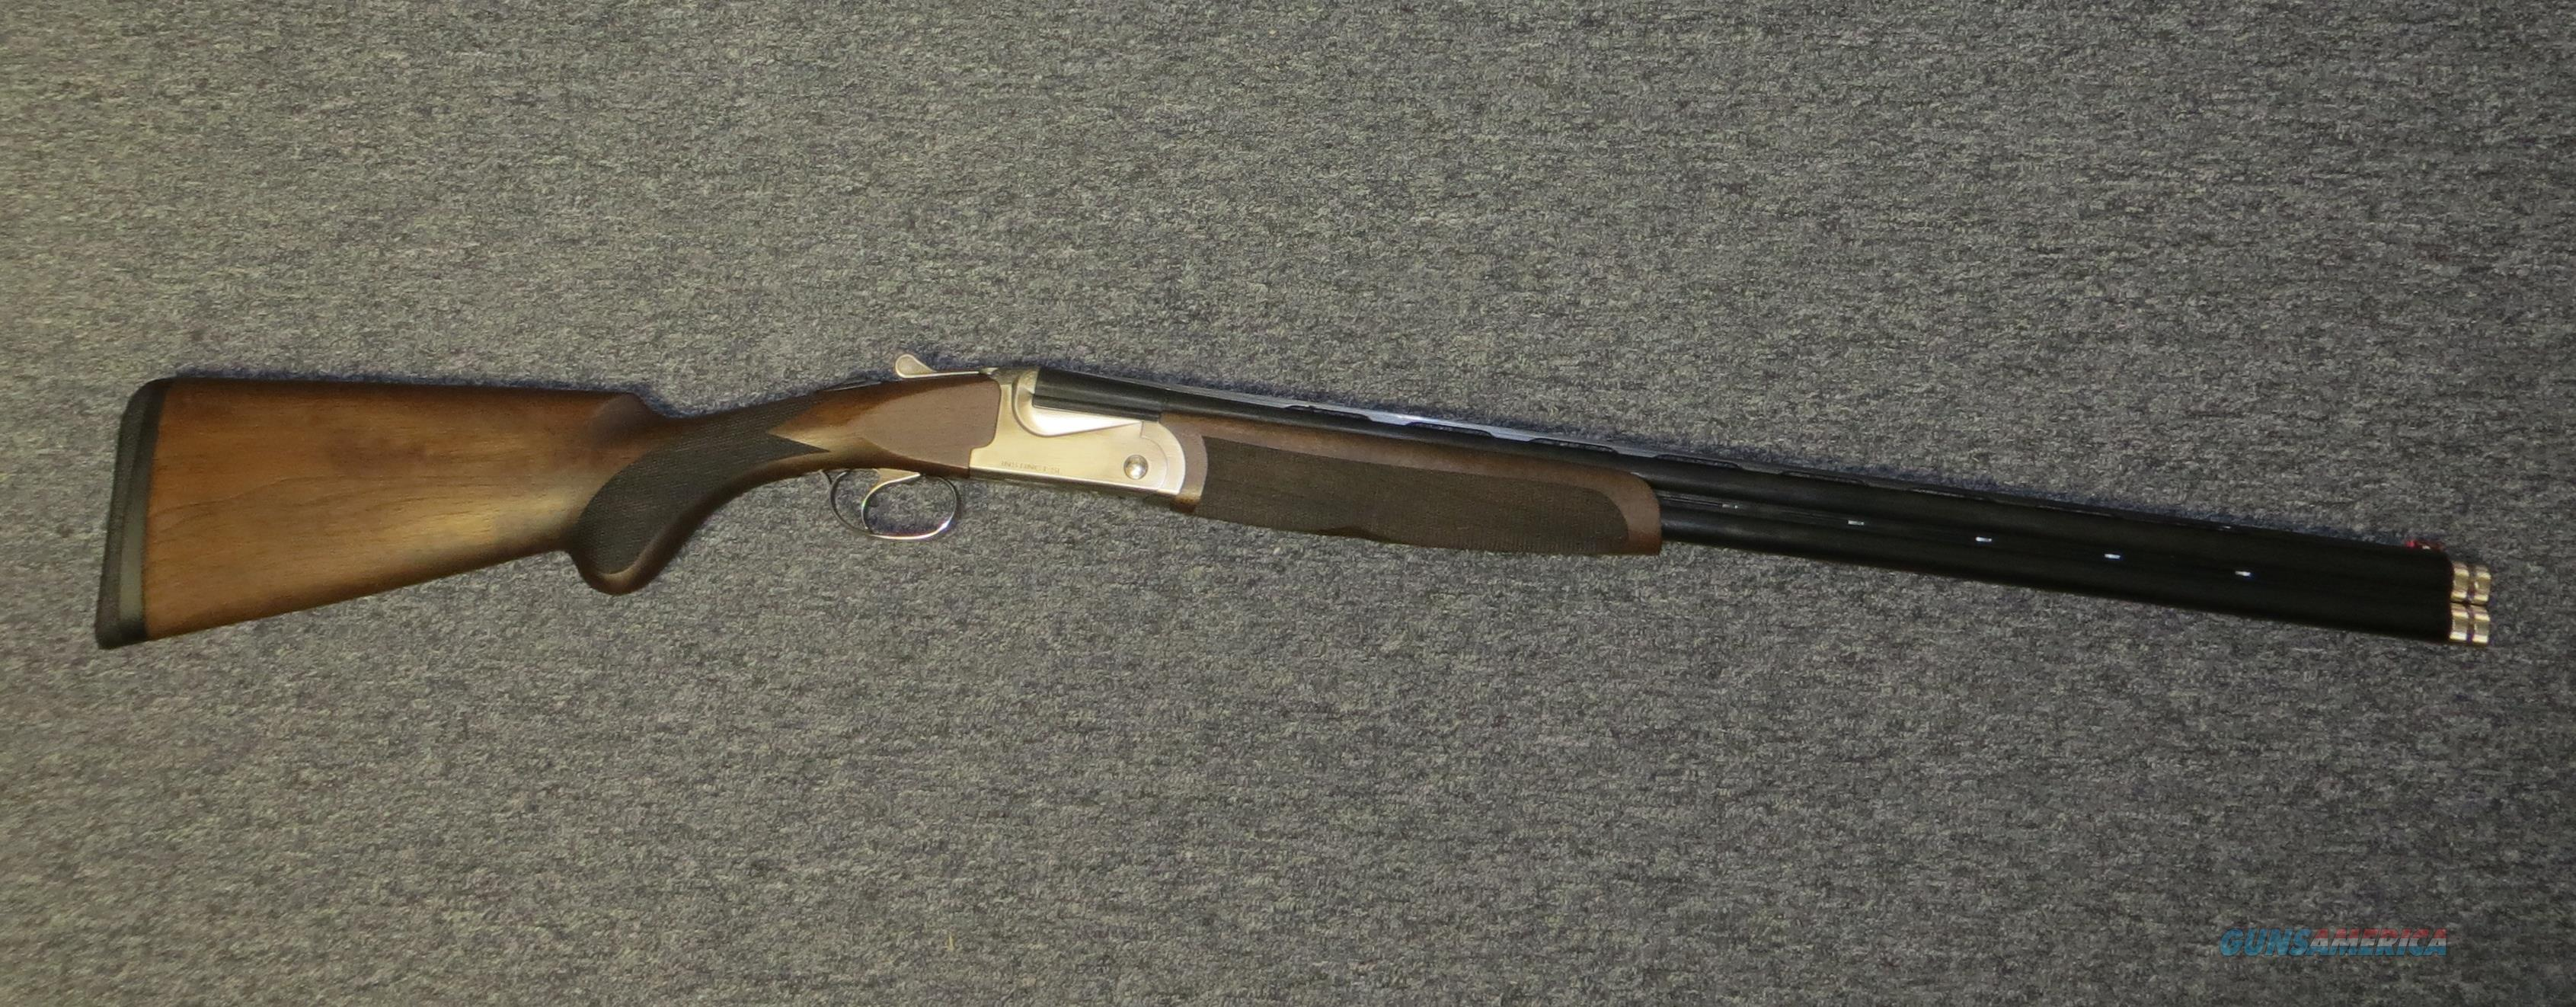 "Instinct SL (26"", 20 ga, O/U)   Guns > Shotguns > Franchi Shotguns > Over/Under > Hunting"